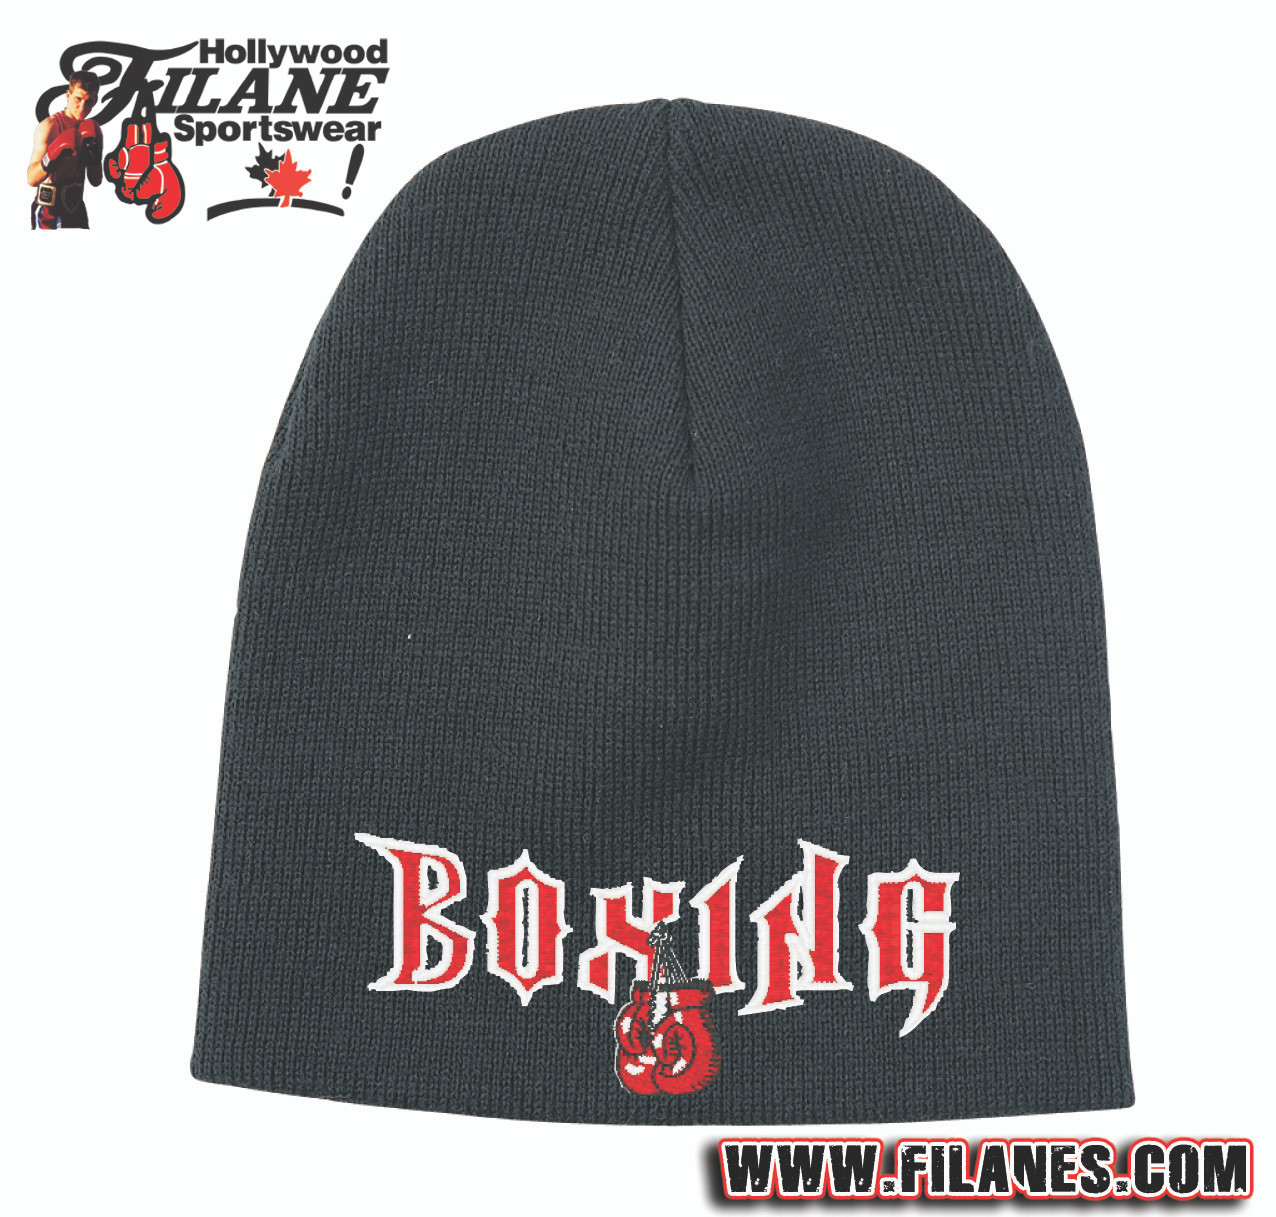 Customized personalized Boxing hat - Hollywood Filane e49167f9c5bf